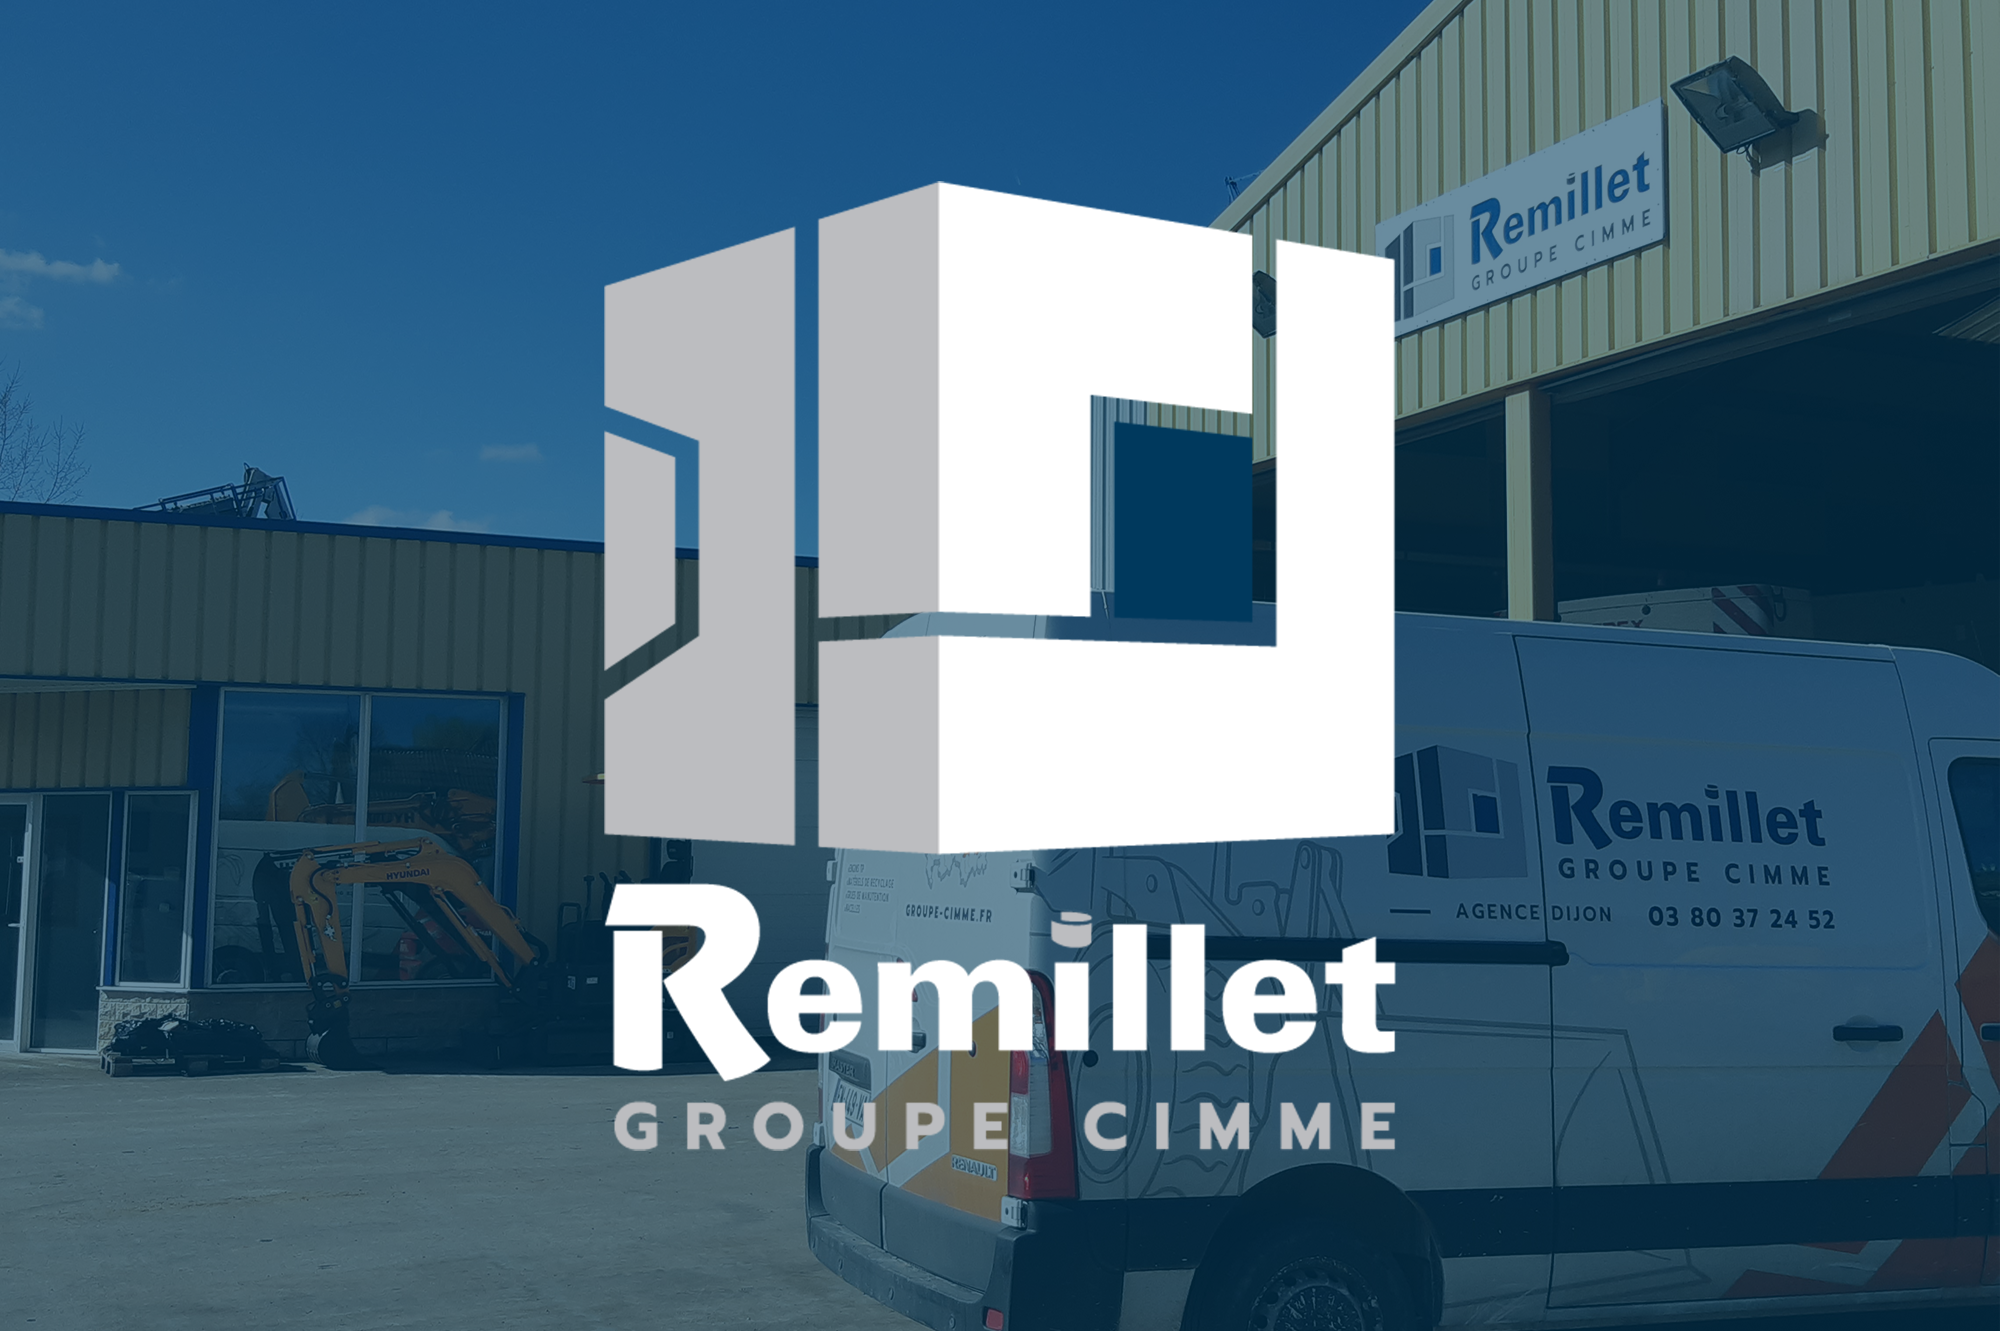 Remillet Groupe cimme